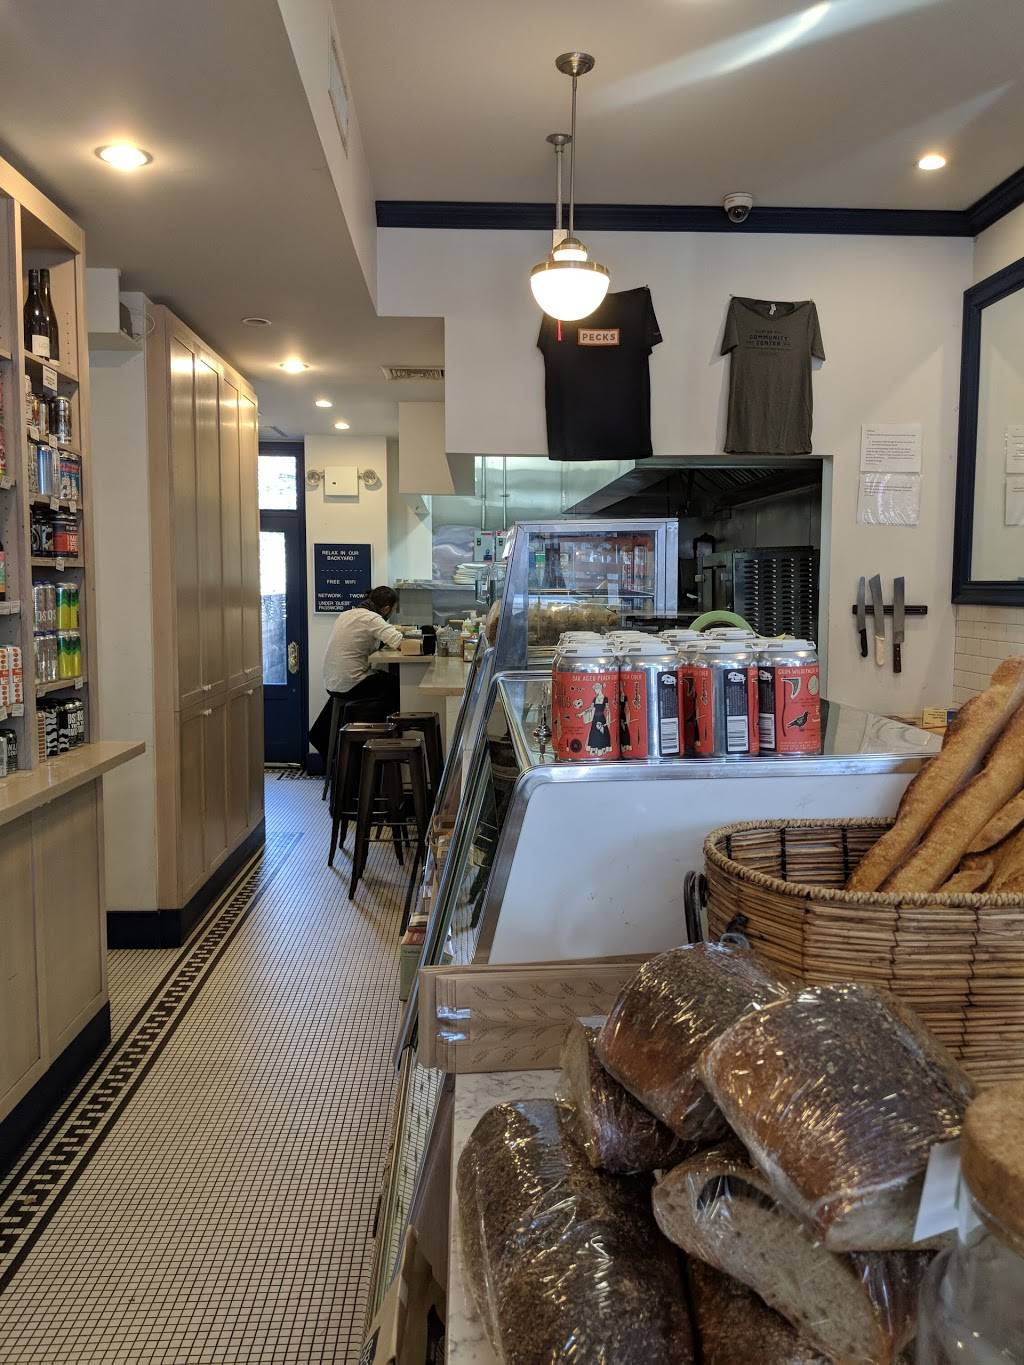 Pecks | cafe | 455A Myrtle Ave, Brooklyn, NY 11205, USA | 3476894969 OR +1 347-689-4969